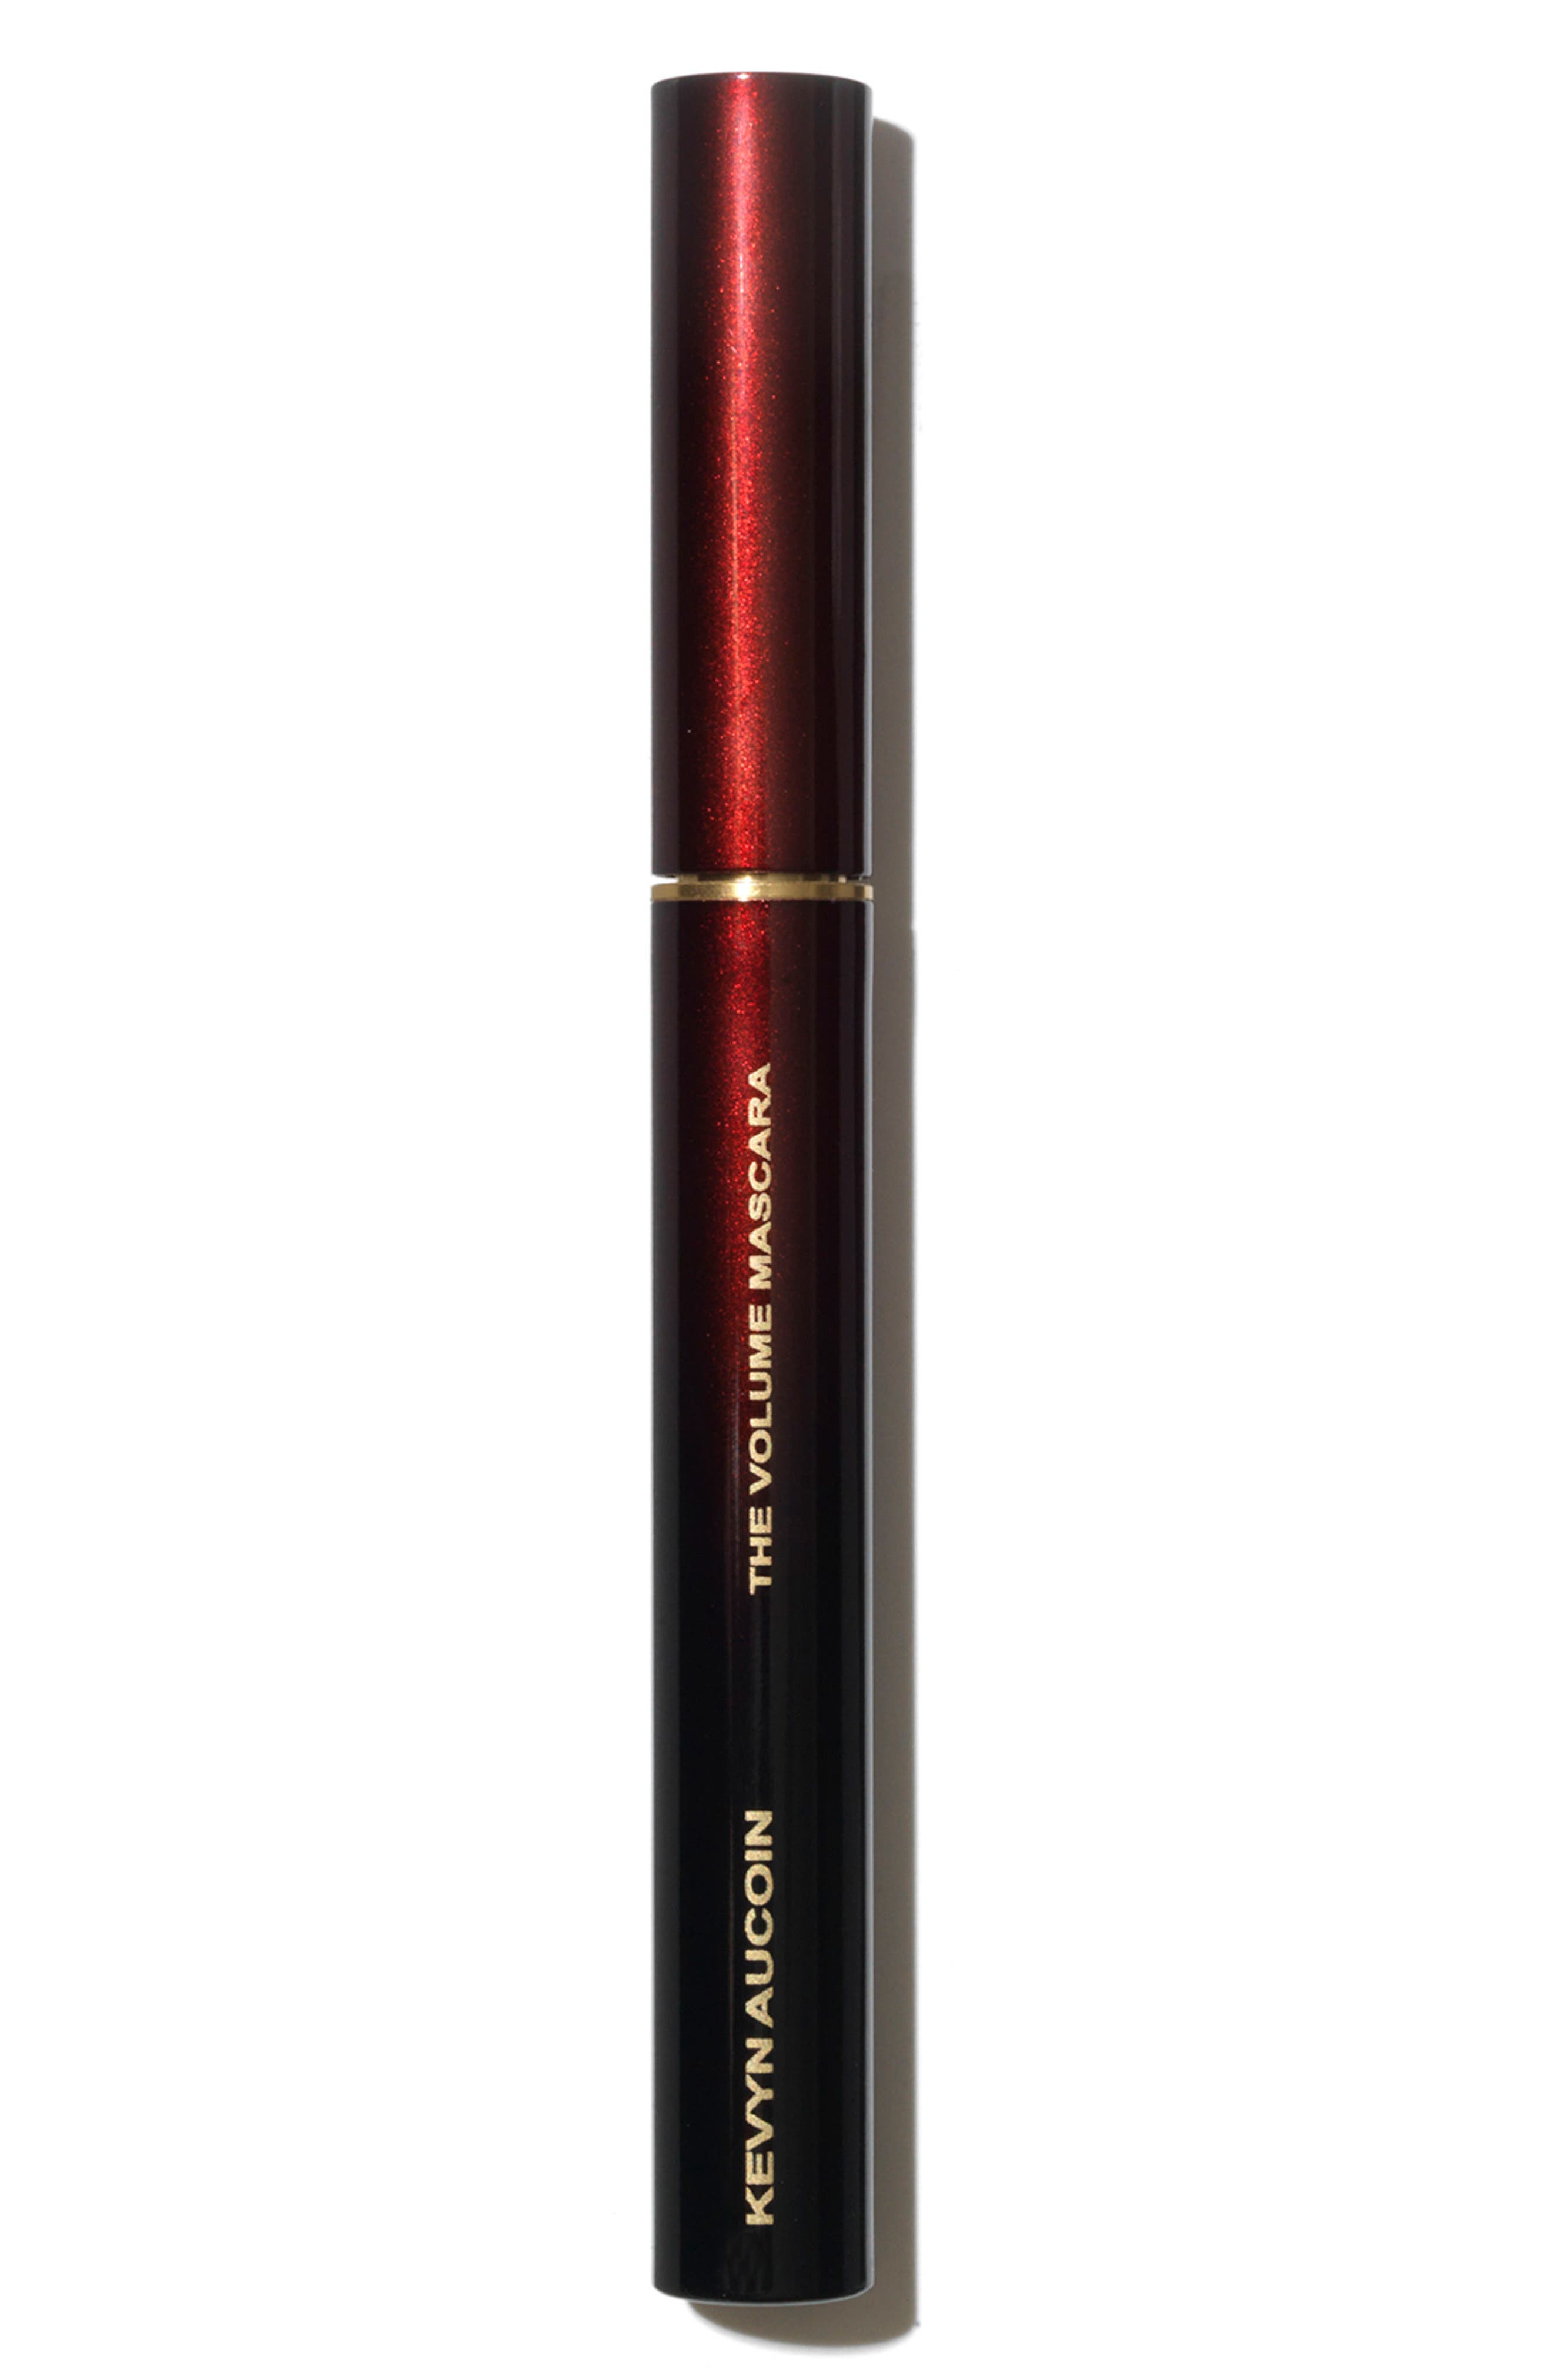 SPACE.NK.apothecary Kevyn Aucoin Beauty The Volume Mascara,                             Alternate thumbnail 4, color,                             001